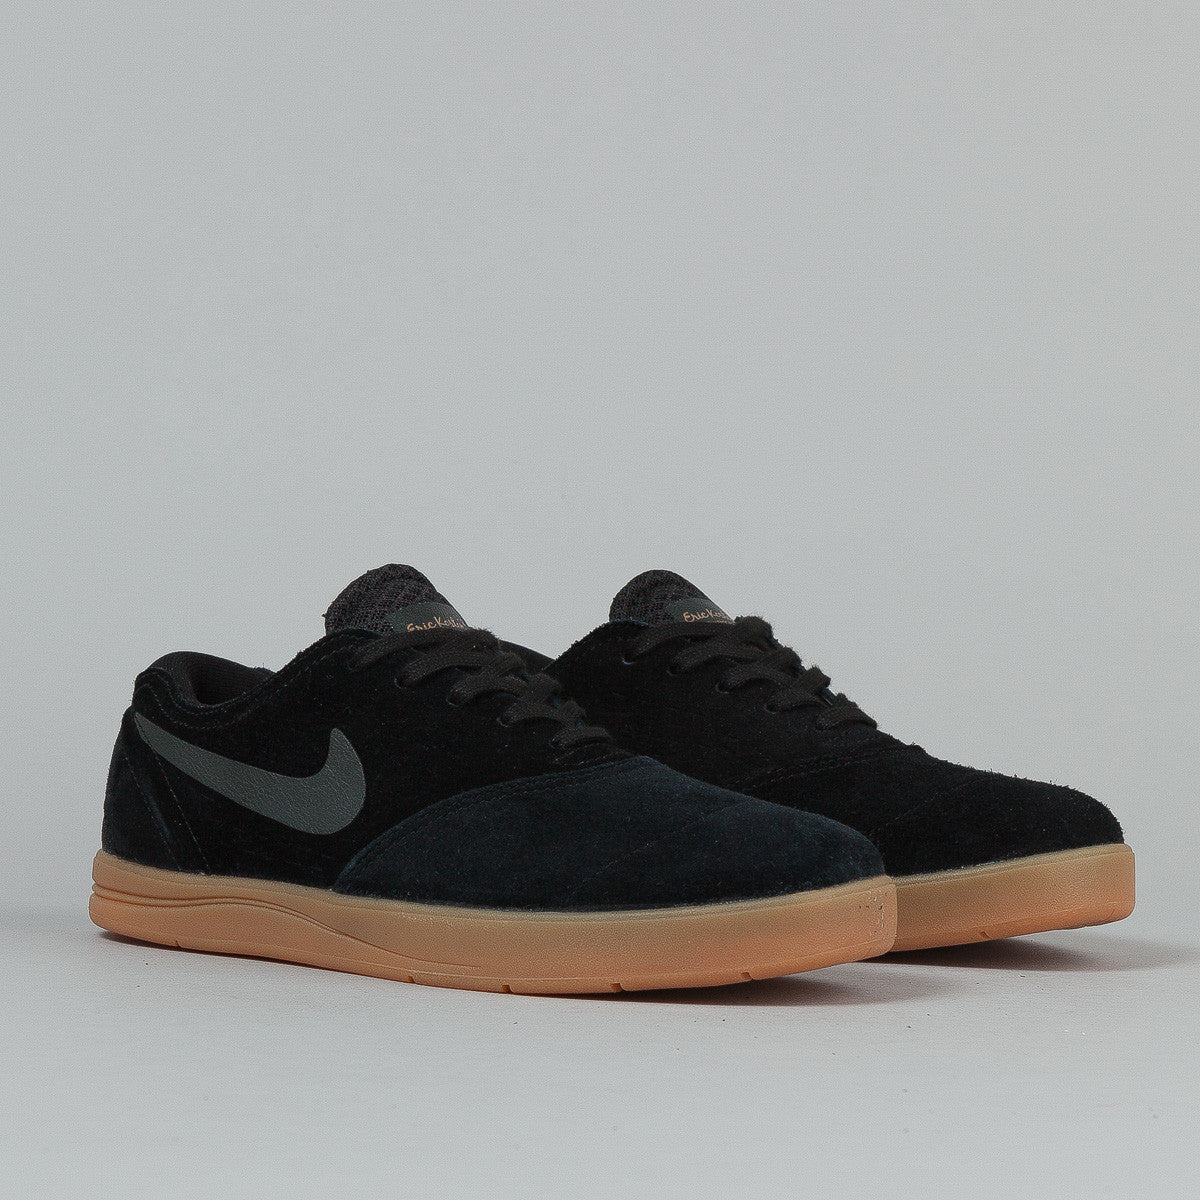 Nike SB Eric Koston 2 Black / Anthracite - Gum Medium Brown?